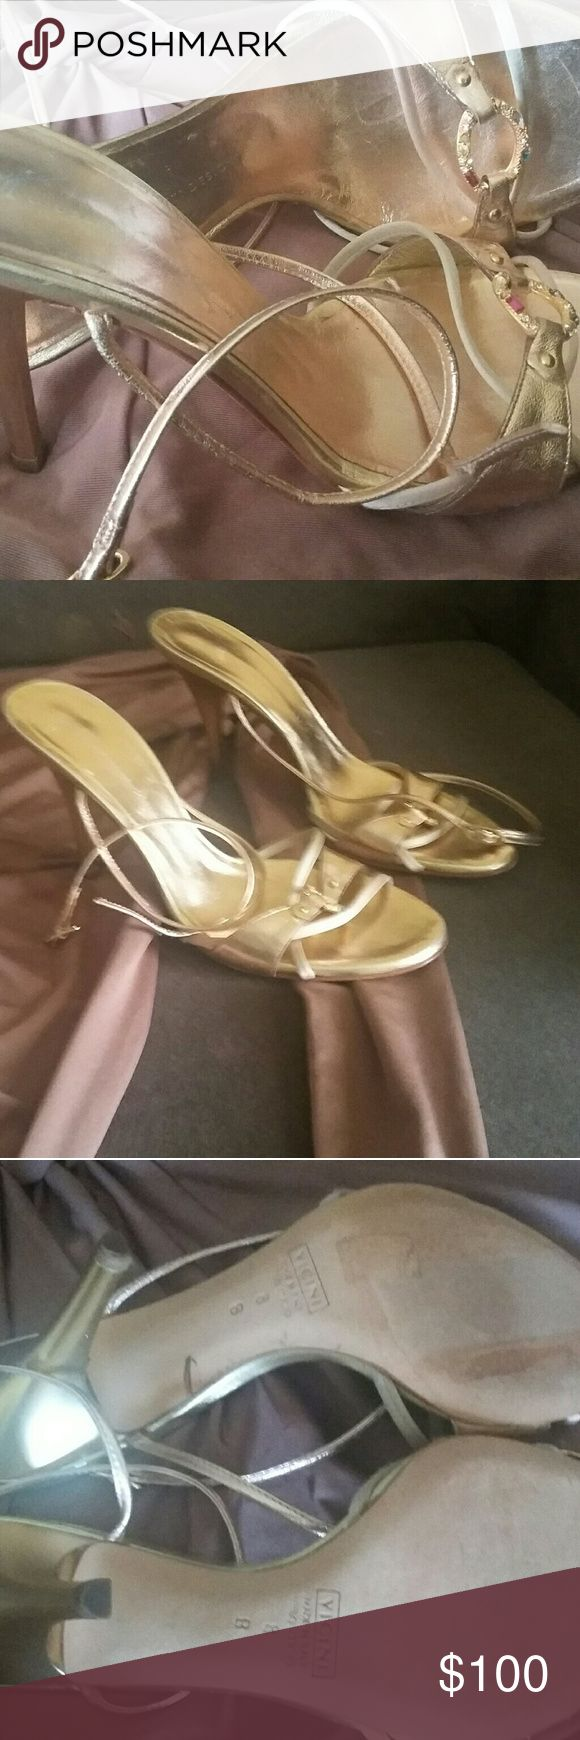 Giuseppe Zanotti rose gold heels Never been worn. Purchased from another site. Gorgeous strappy rose gold jeweled GZ Vicini shoes. 3 inch heels.  Straps are rose gold. Heel is yellow gold. All jewels are intact. Too low for me. I like at least 4 inches. Marked size 38 (8). Best for size 7.5. Not suitable for wider feet. Giuseppe Zanotti Shoes Heels